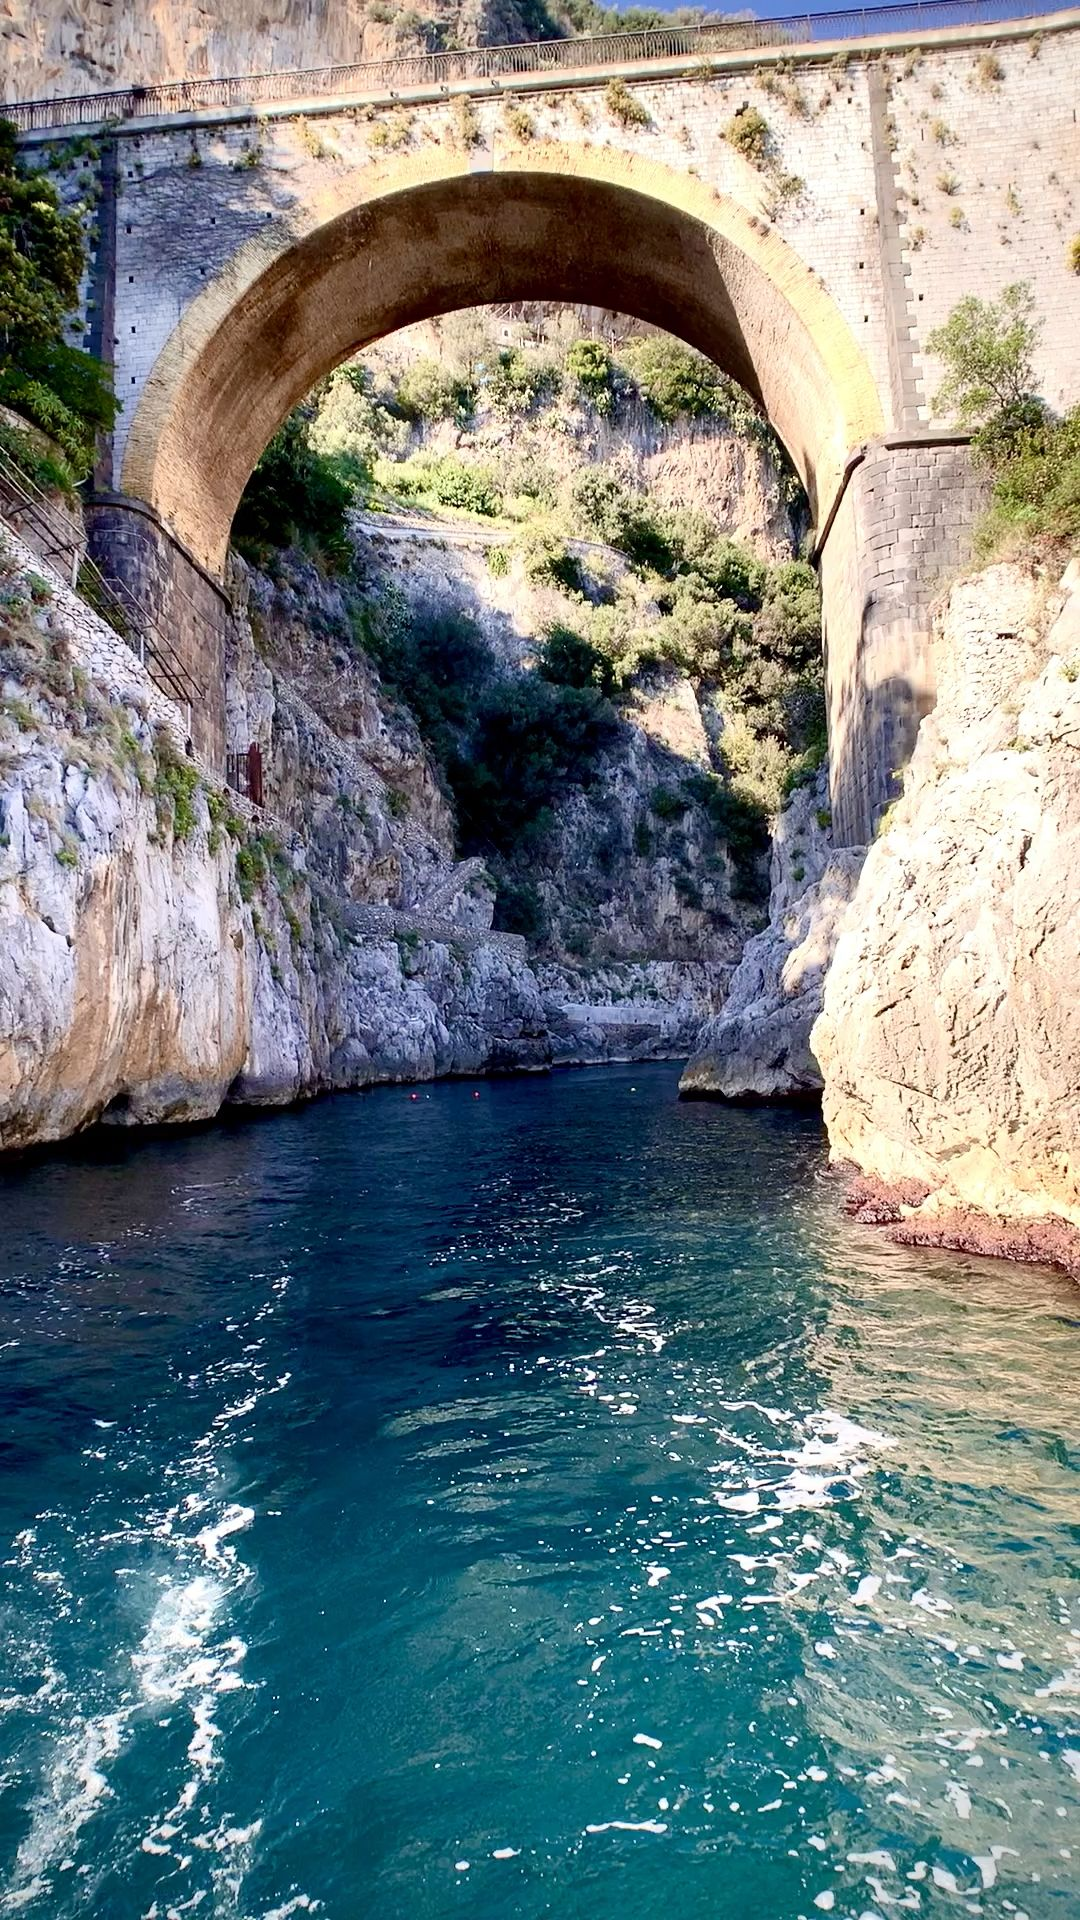 , Amalfi Coast Boat Tours, My Travels Blog 2020, My Travels Blog 2020